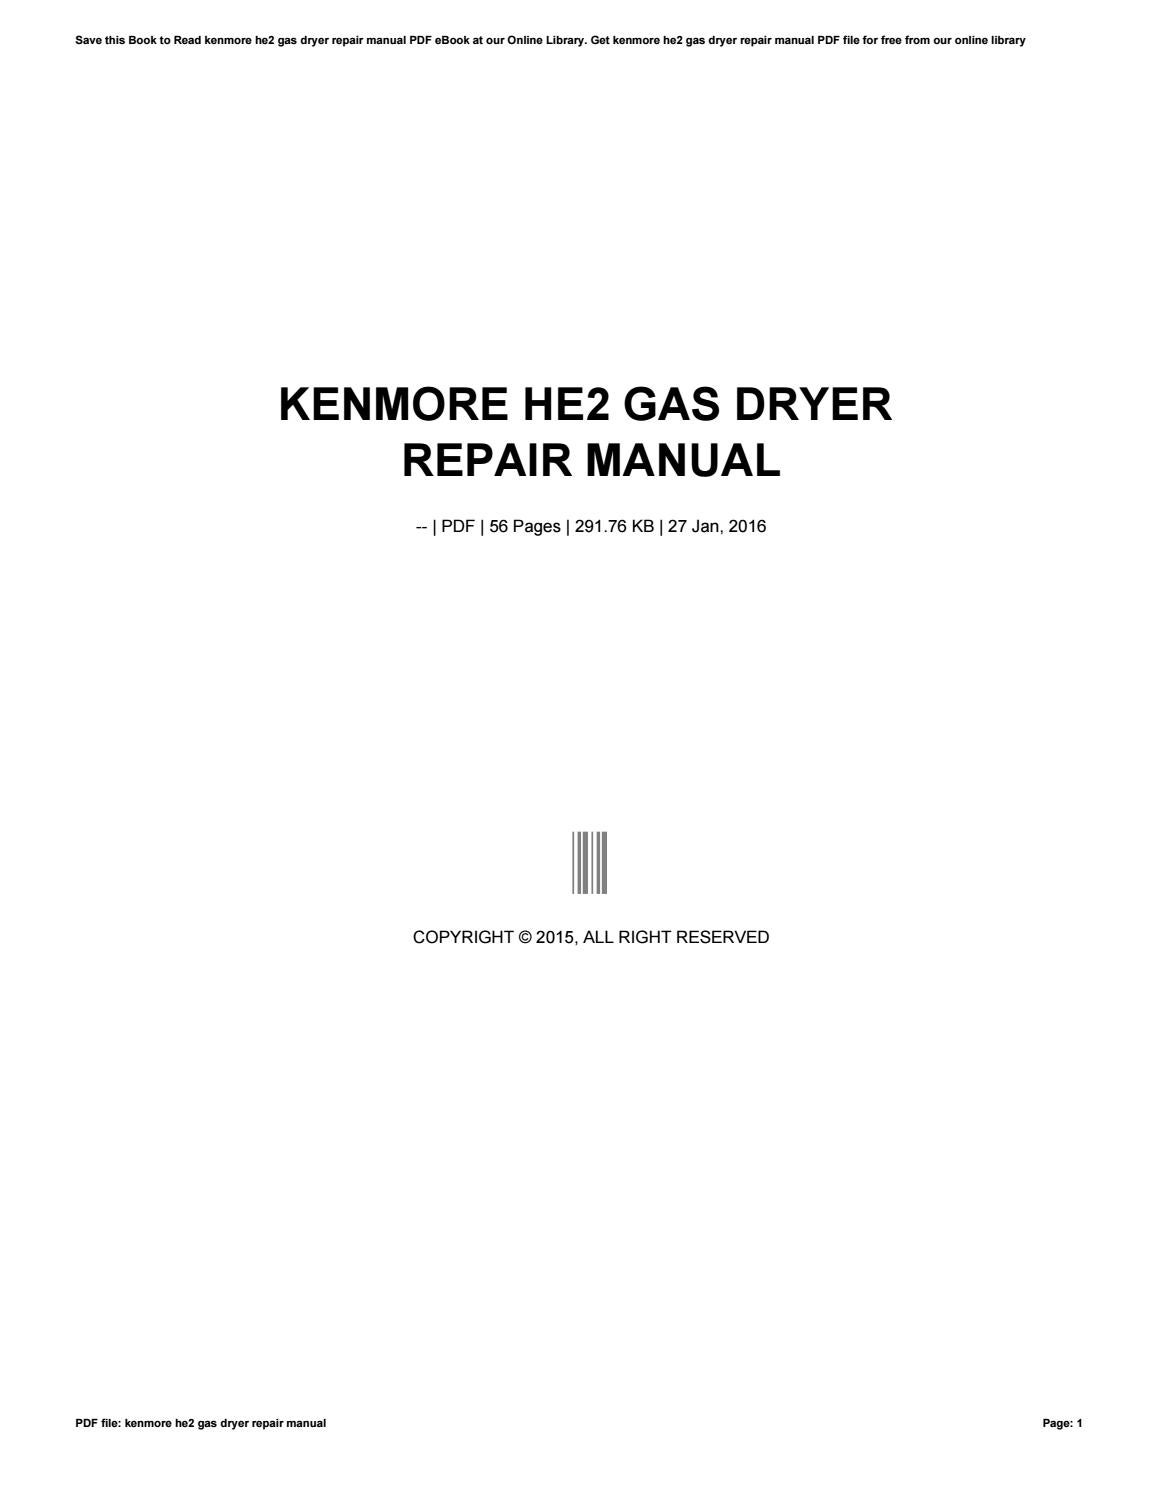 Kenmore he2 repair manual array kenmore he2 gas dryer repair manual by successlocation8 issuu rh issuu fandeluxe Choice Image